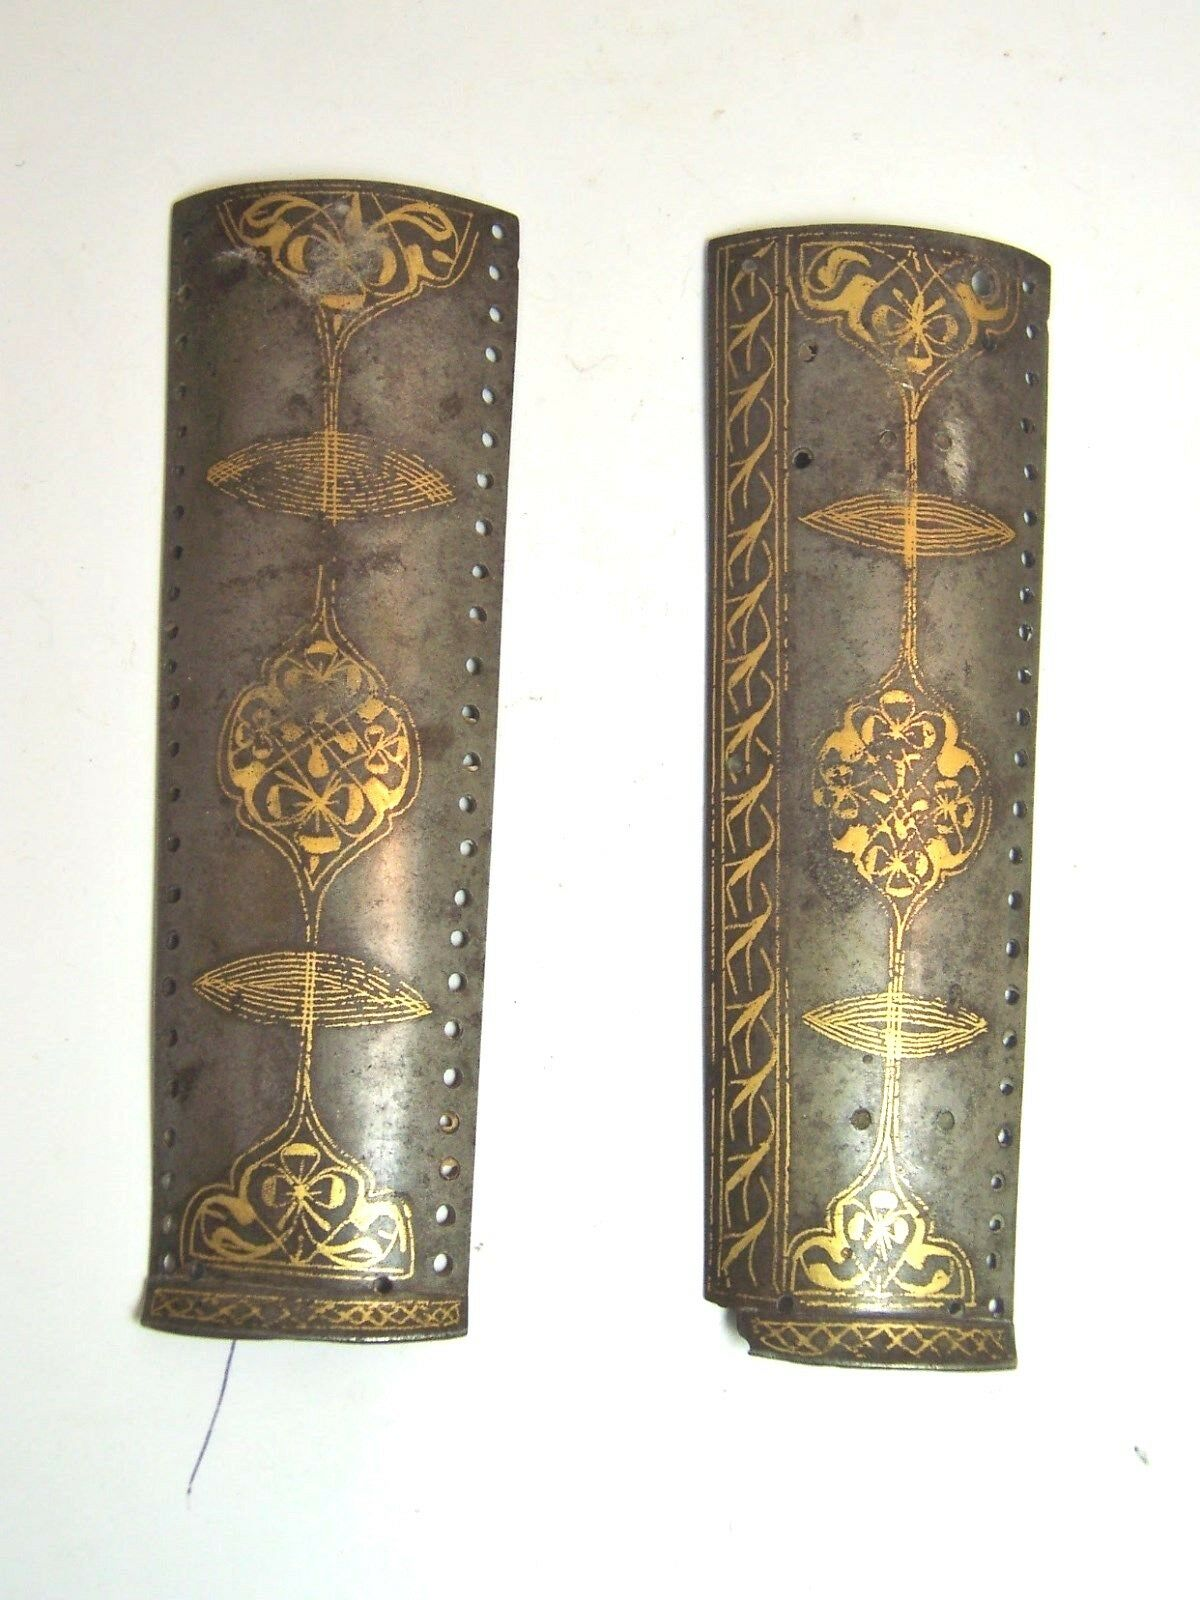 Antique Mughal India or Persian pair gold inlaid armour parts 19th century